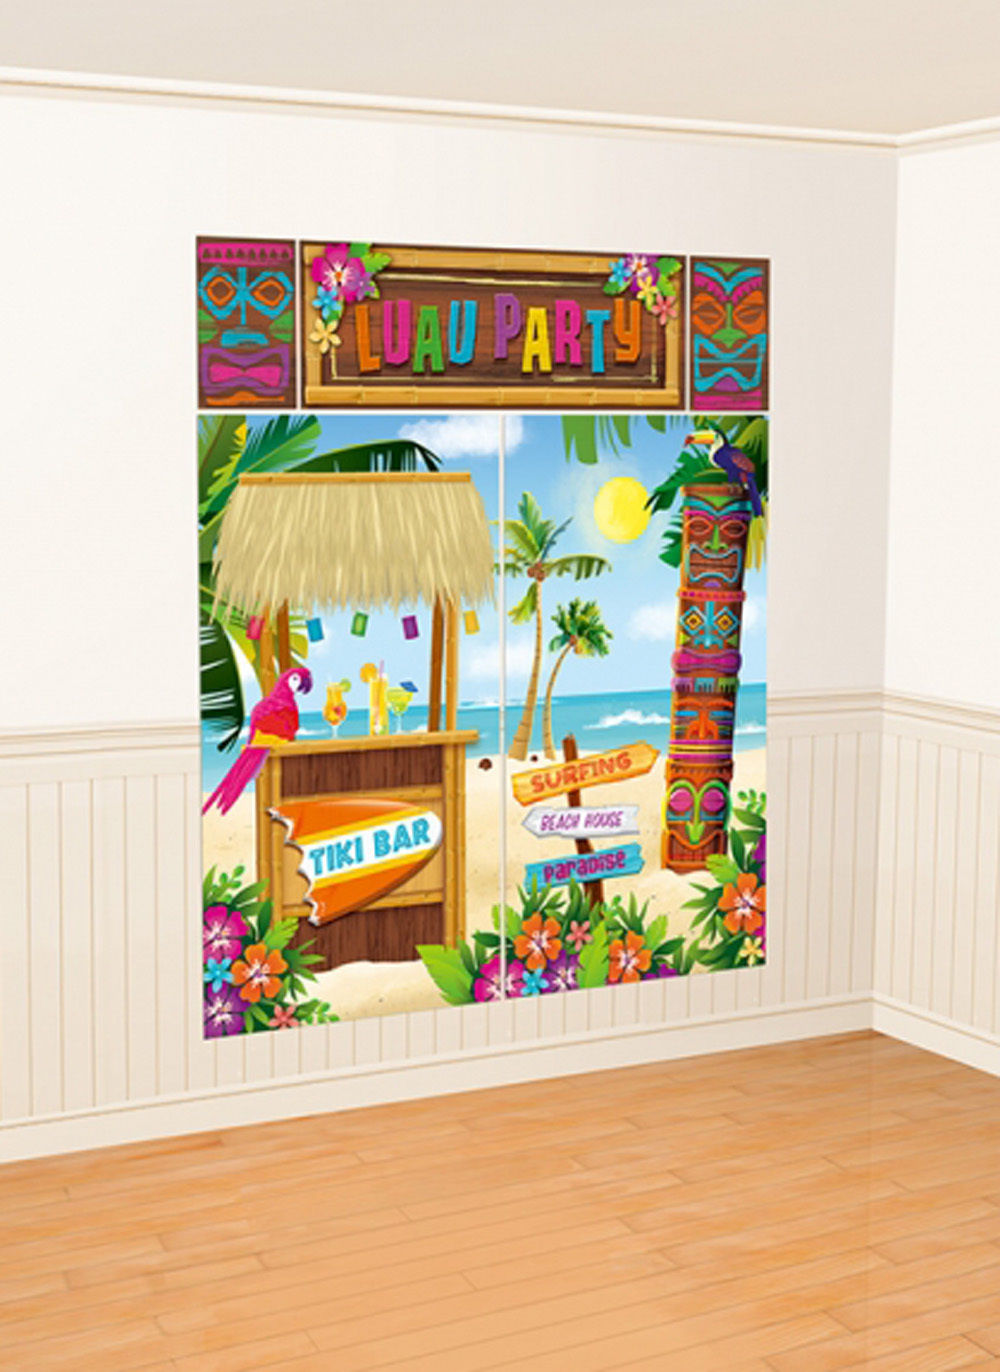 Hawaii Luau Tiki bar Wand Dekoration Szene Hintergrund Party ...